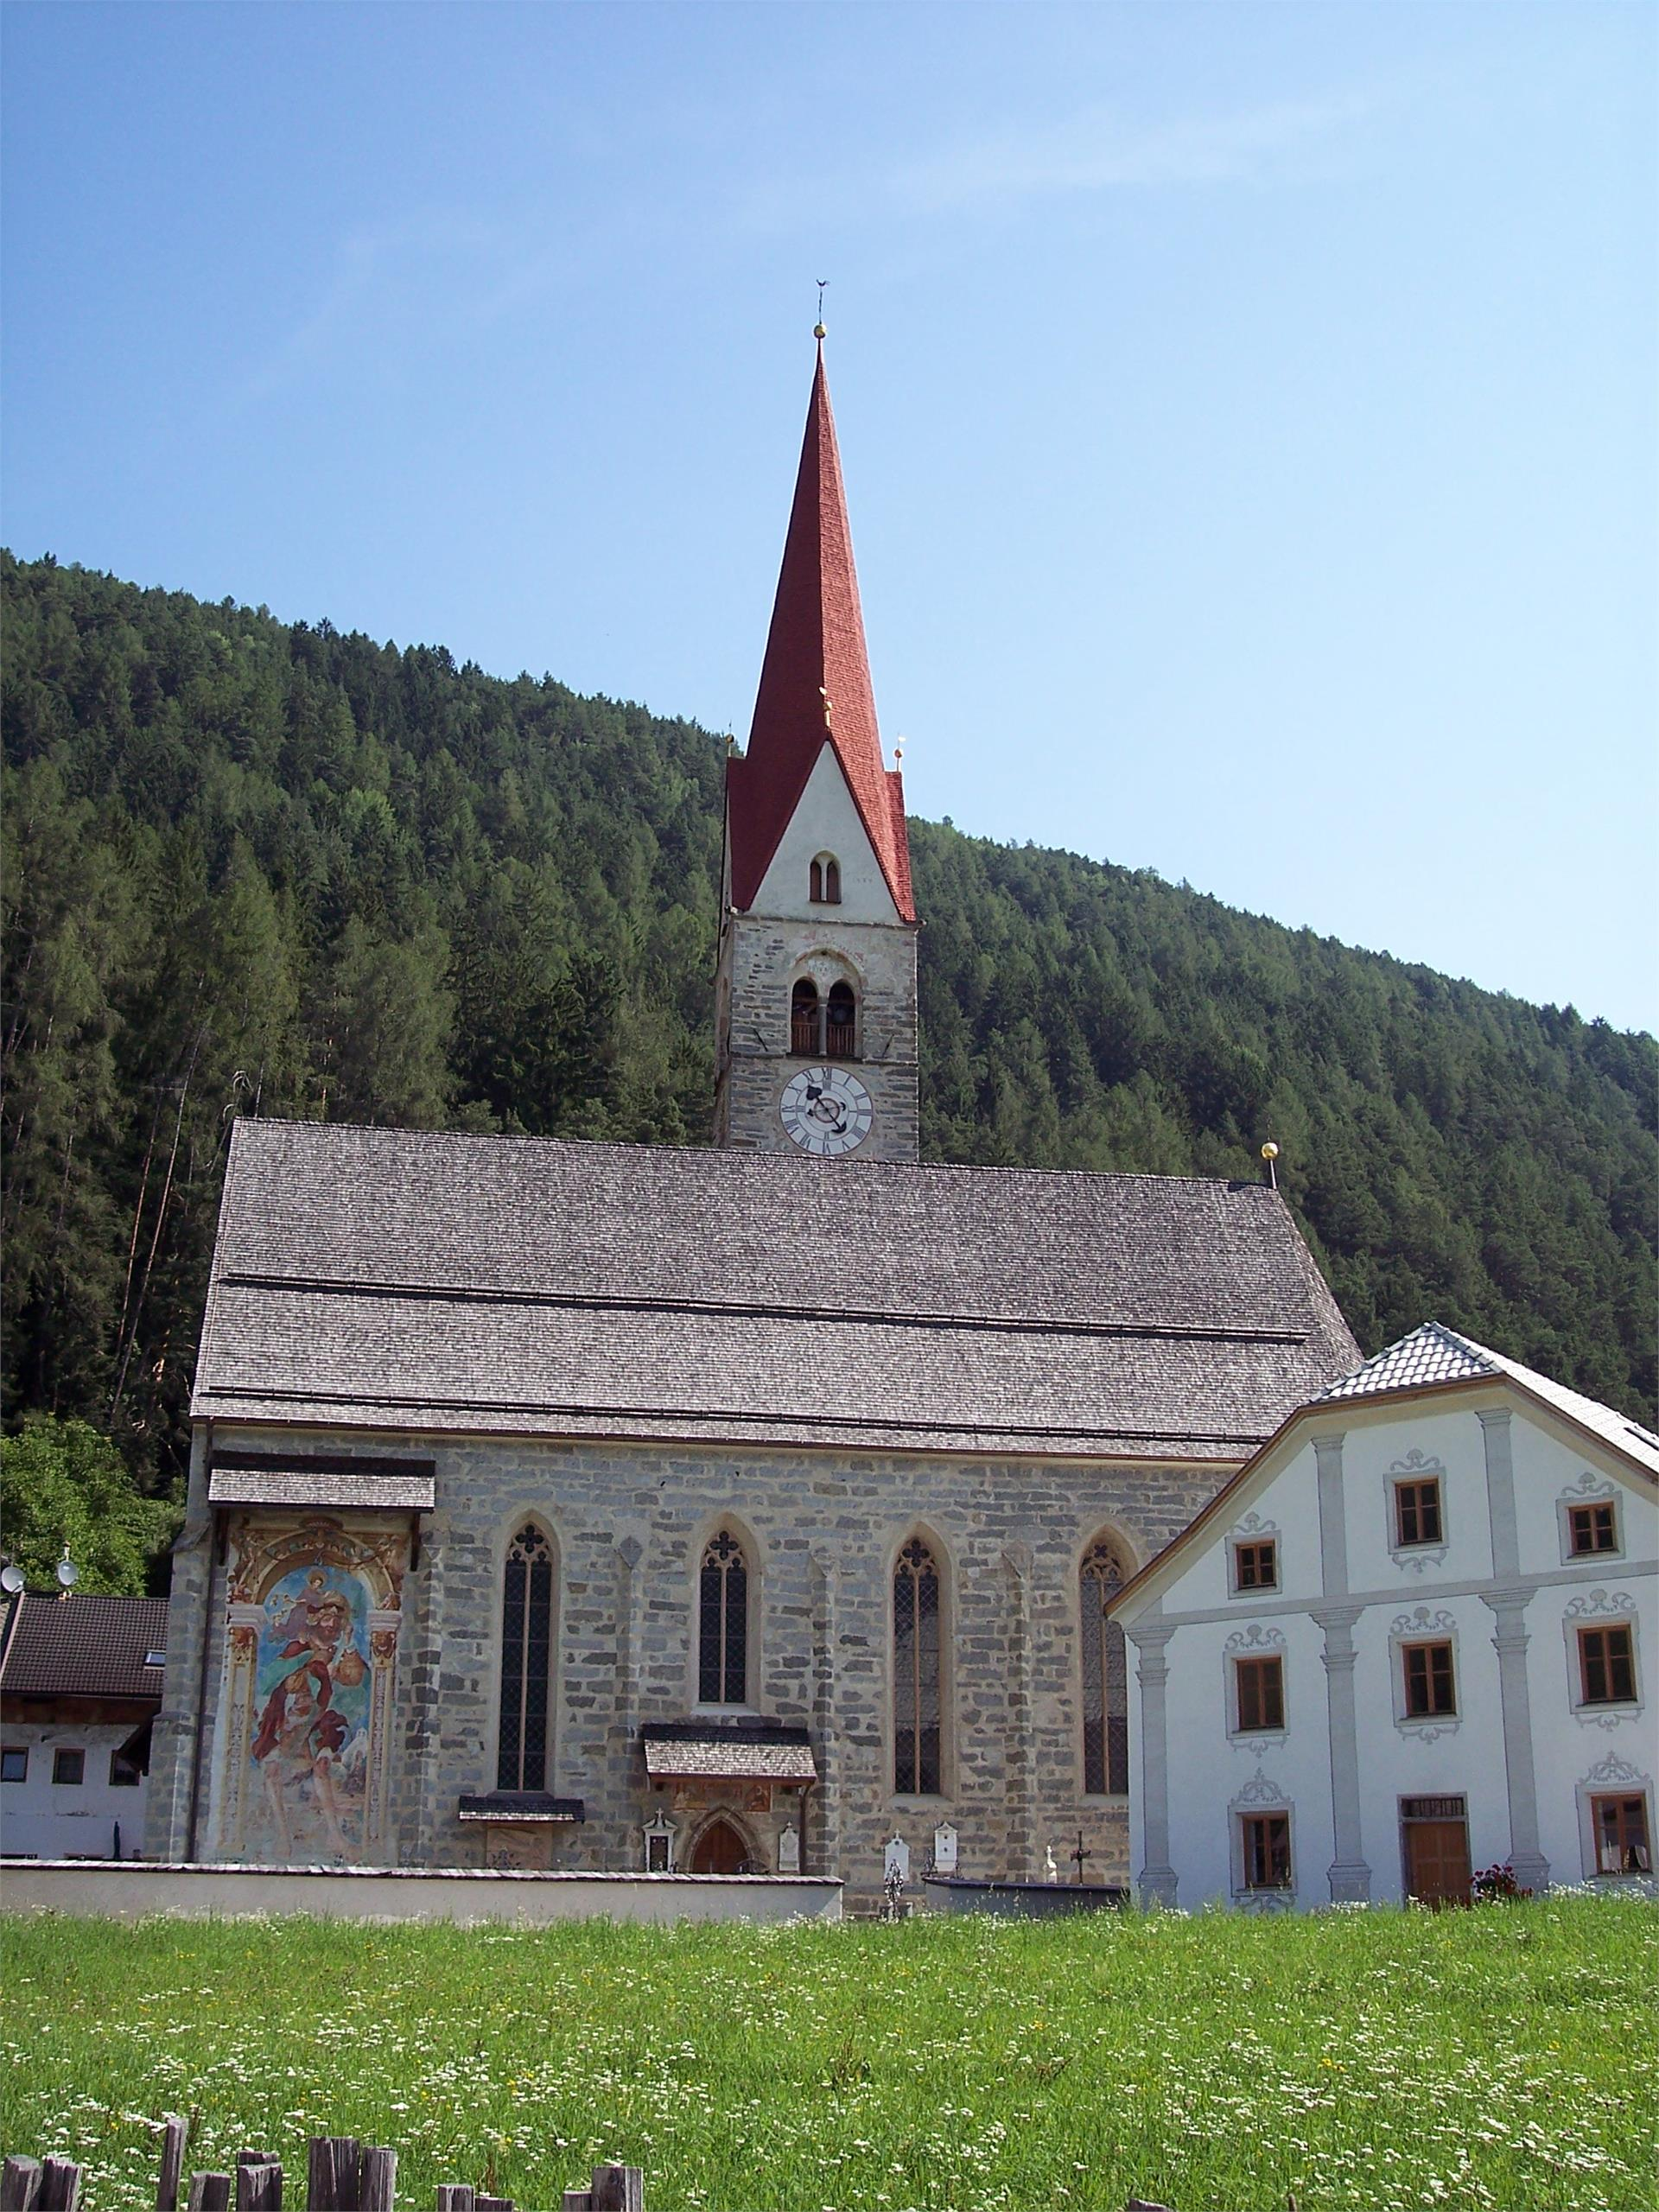 Parish church in St. Sigmund